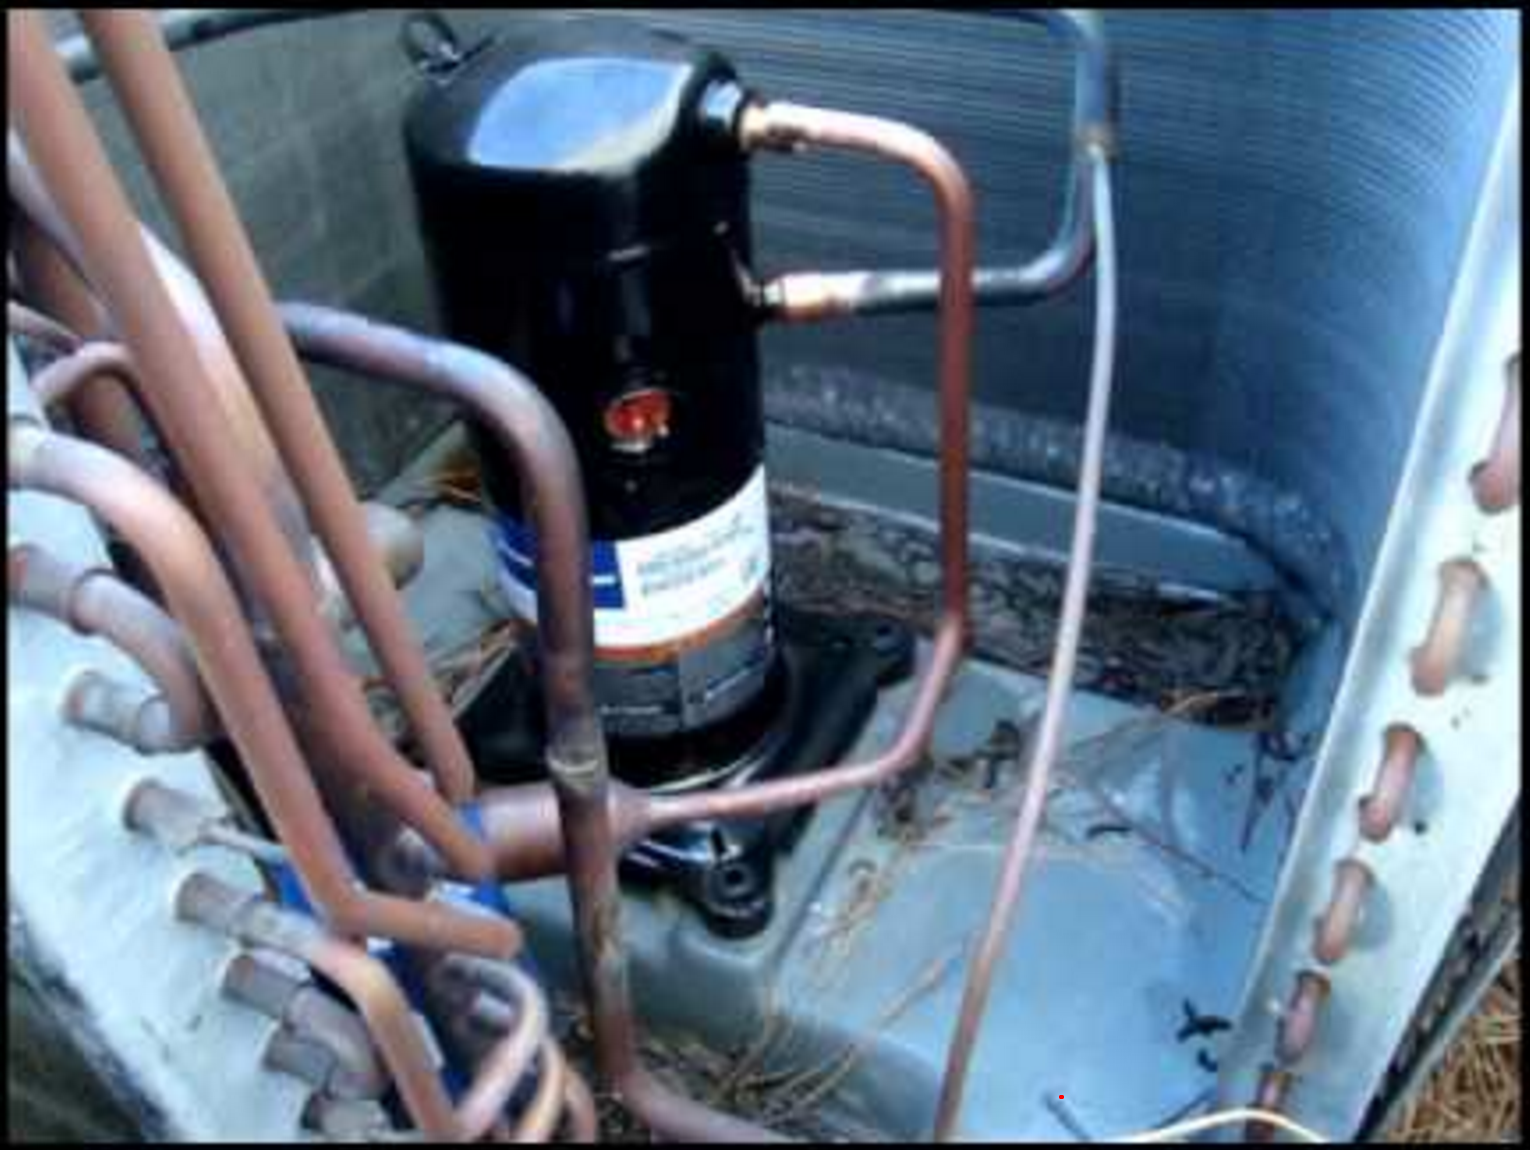 Diagnosing issues in a 3 phase air conditioning compressor - HVAC BRAIN